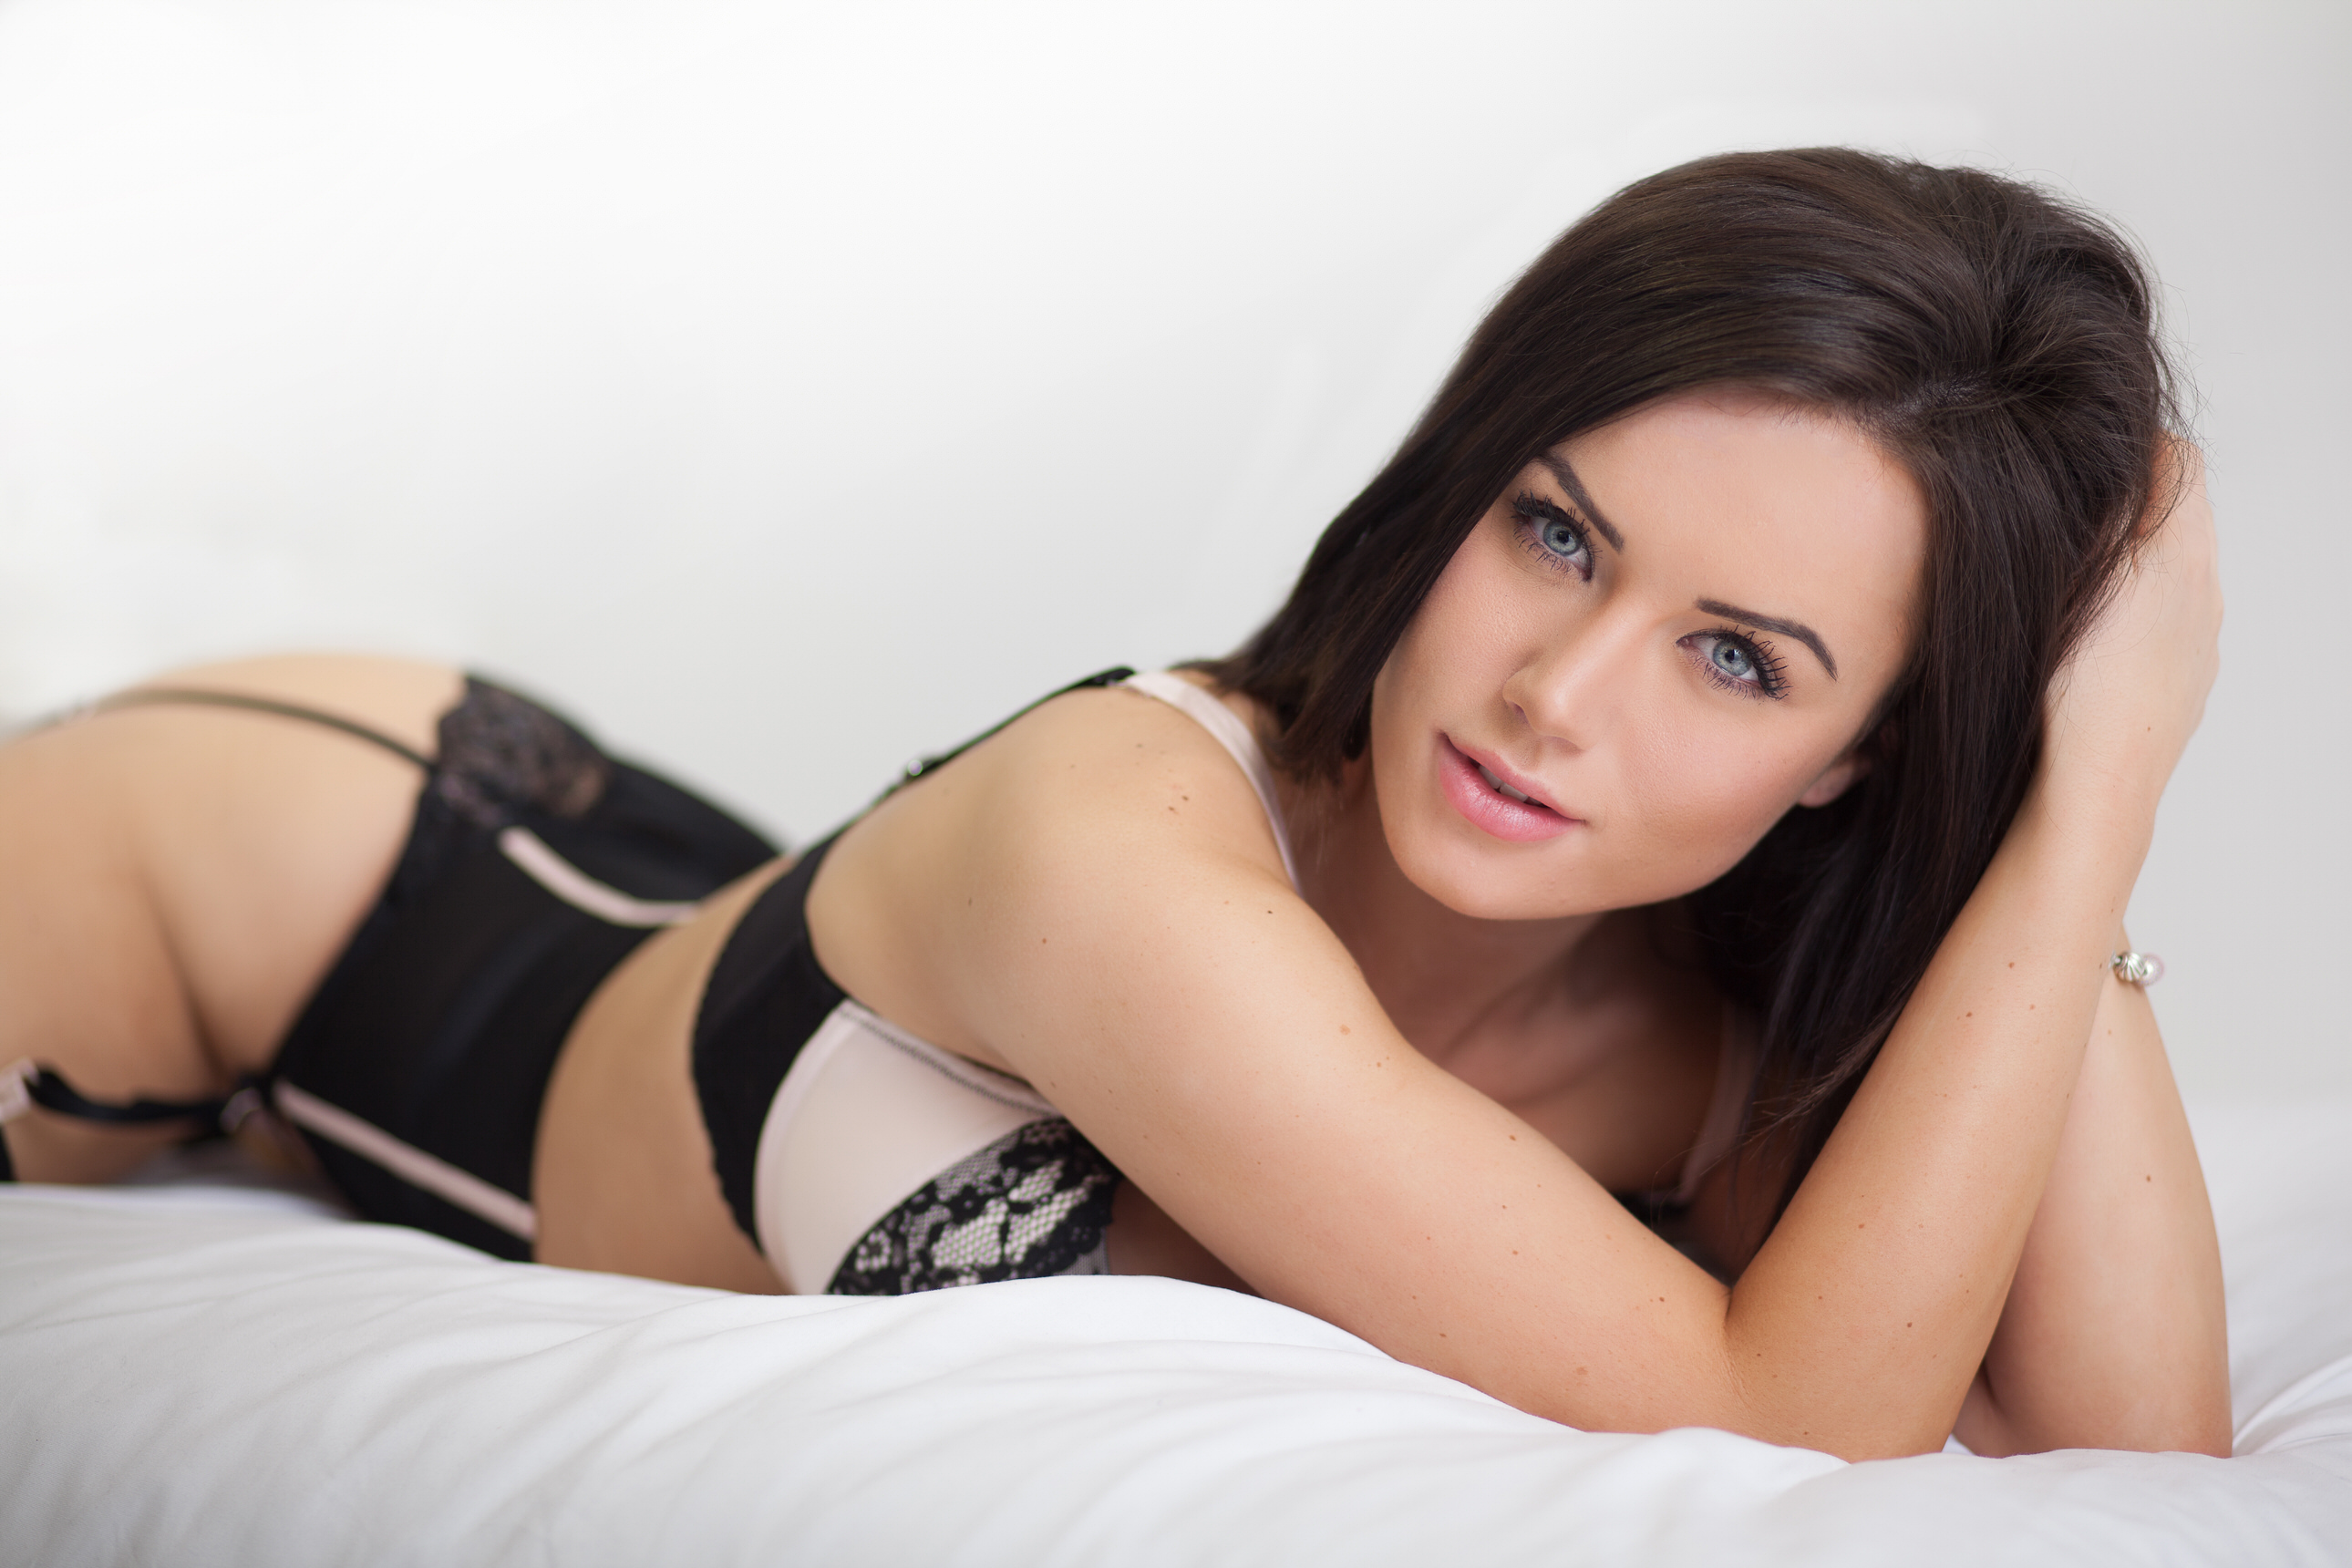 lingeree photo with model in black underwear by Boudoir Photographer Lancashire